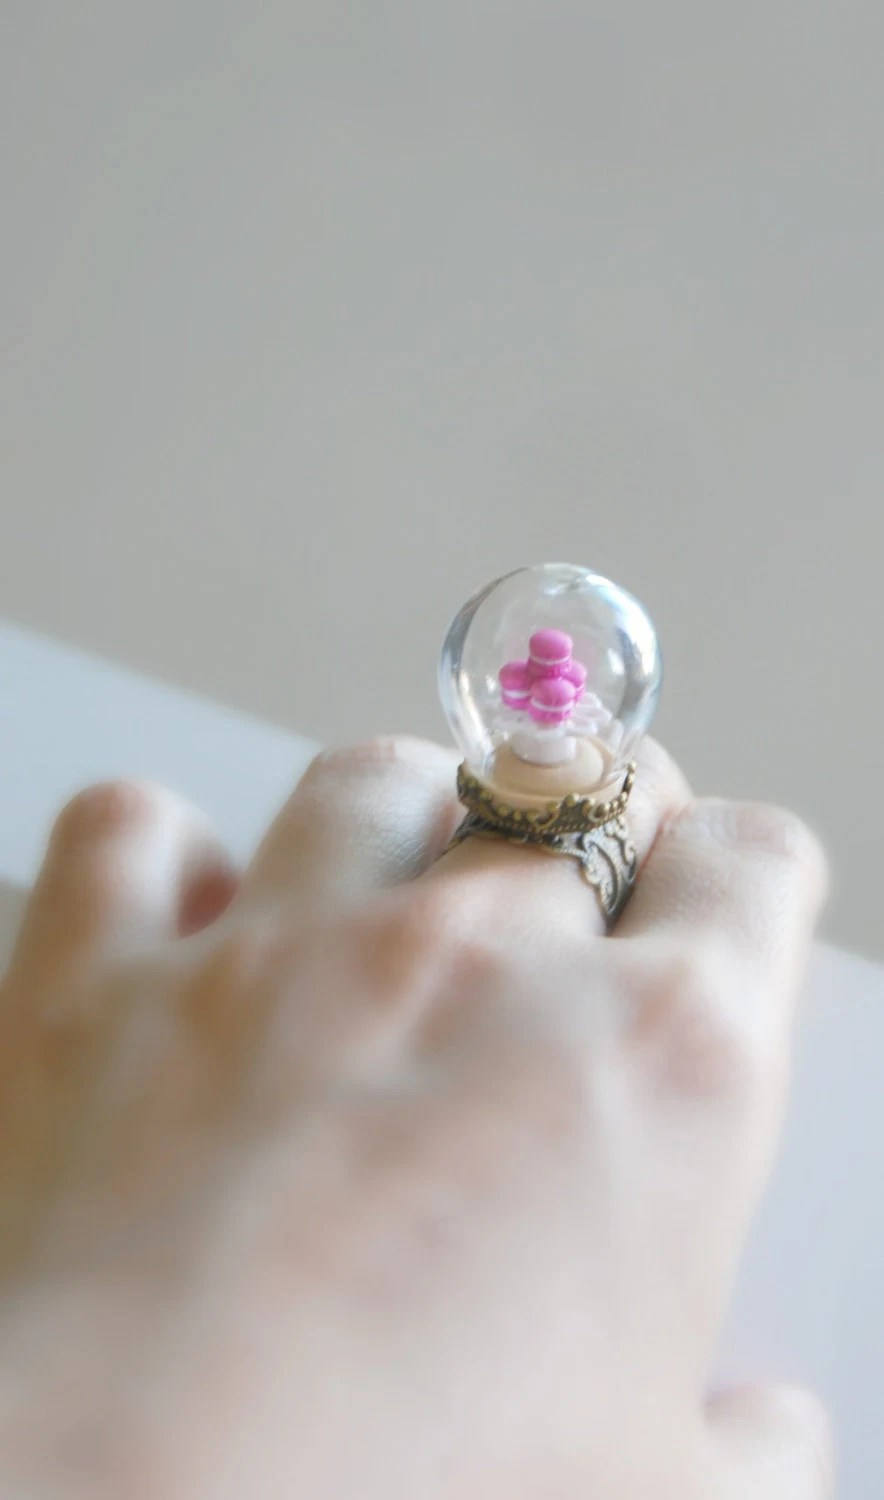 A French Patisserie Ring. Fake Food. Jewelry. Miniature. Shabby Chic. Polymer Clay. Handmade. Paris. Terrarium Ring. Romantic. Spring.